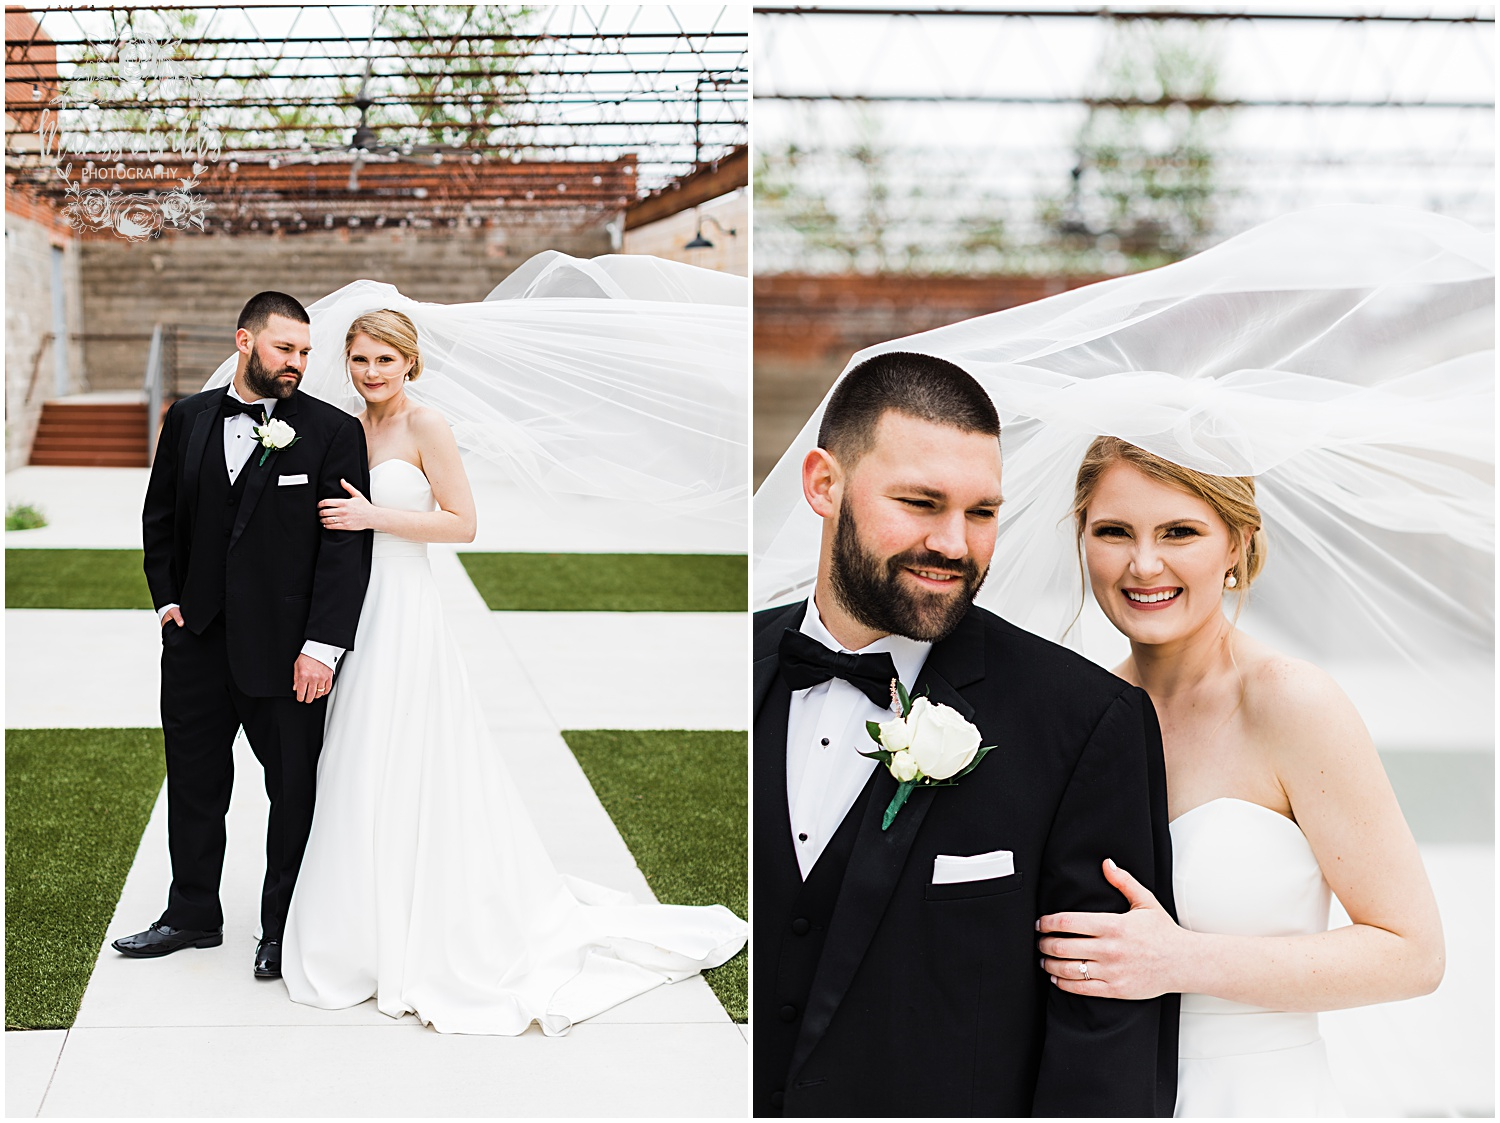 ABBY & CHARLIE WEDDING | THE HUDSON EVENT SPACE WEDDING | MARISSA CRIBBS PHOTOGRAPHY_7515.jpg